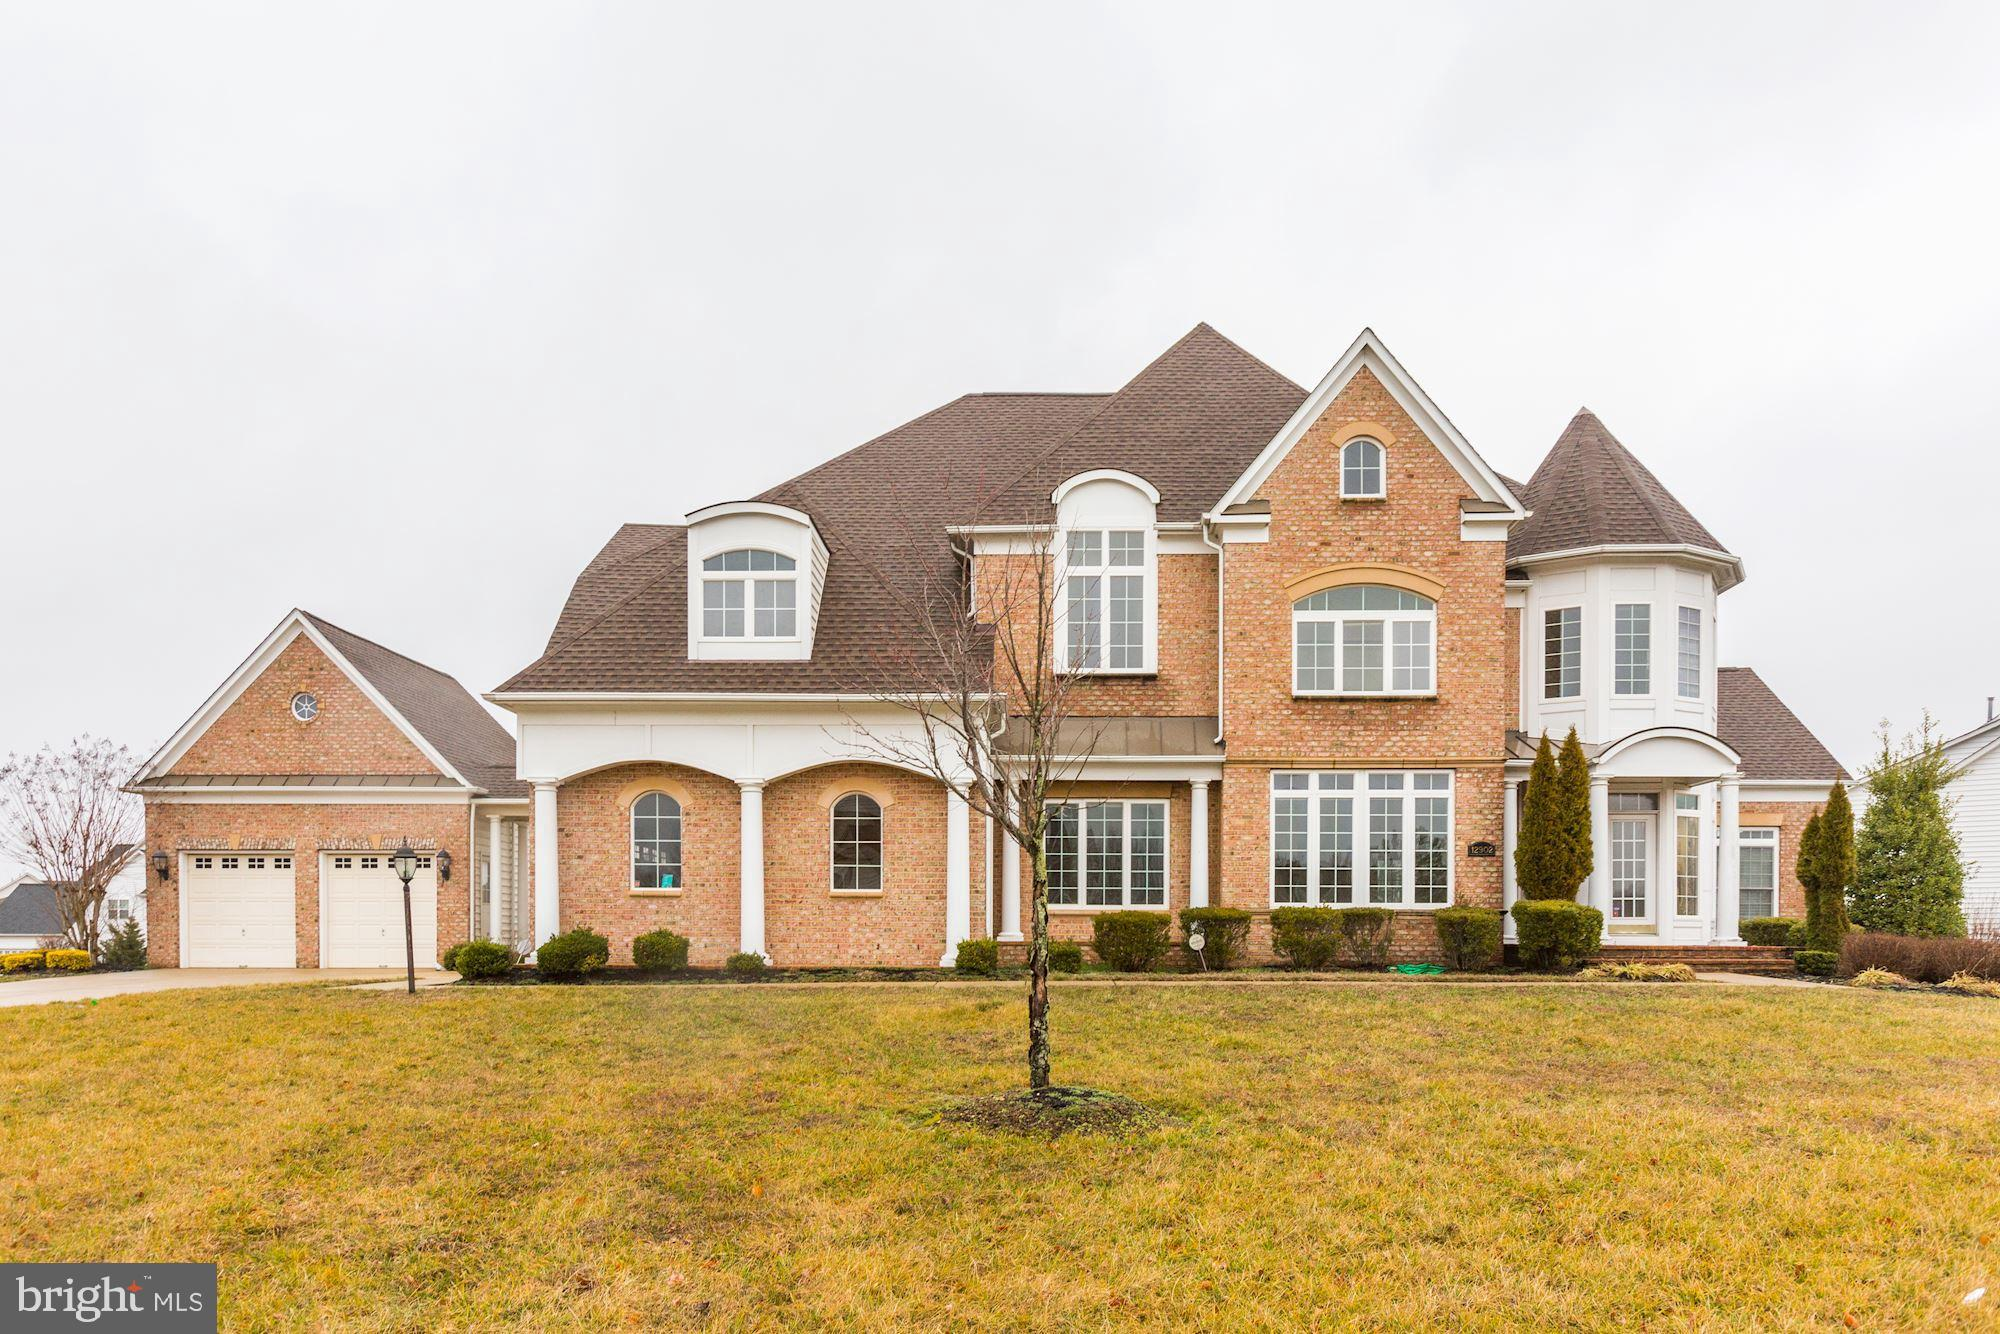 12902 WOODMORE NORTH BOULEVARD, BOWIE, MD 20720